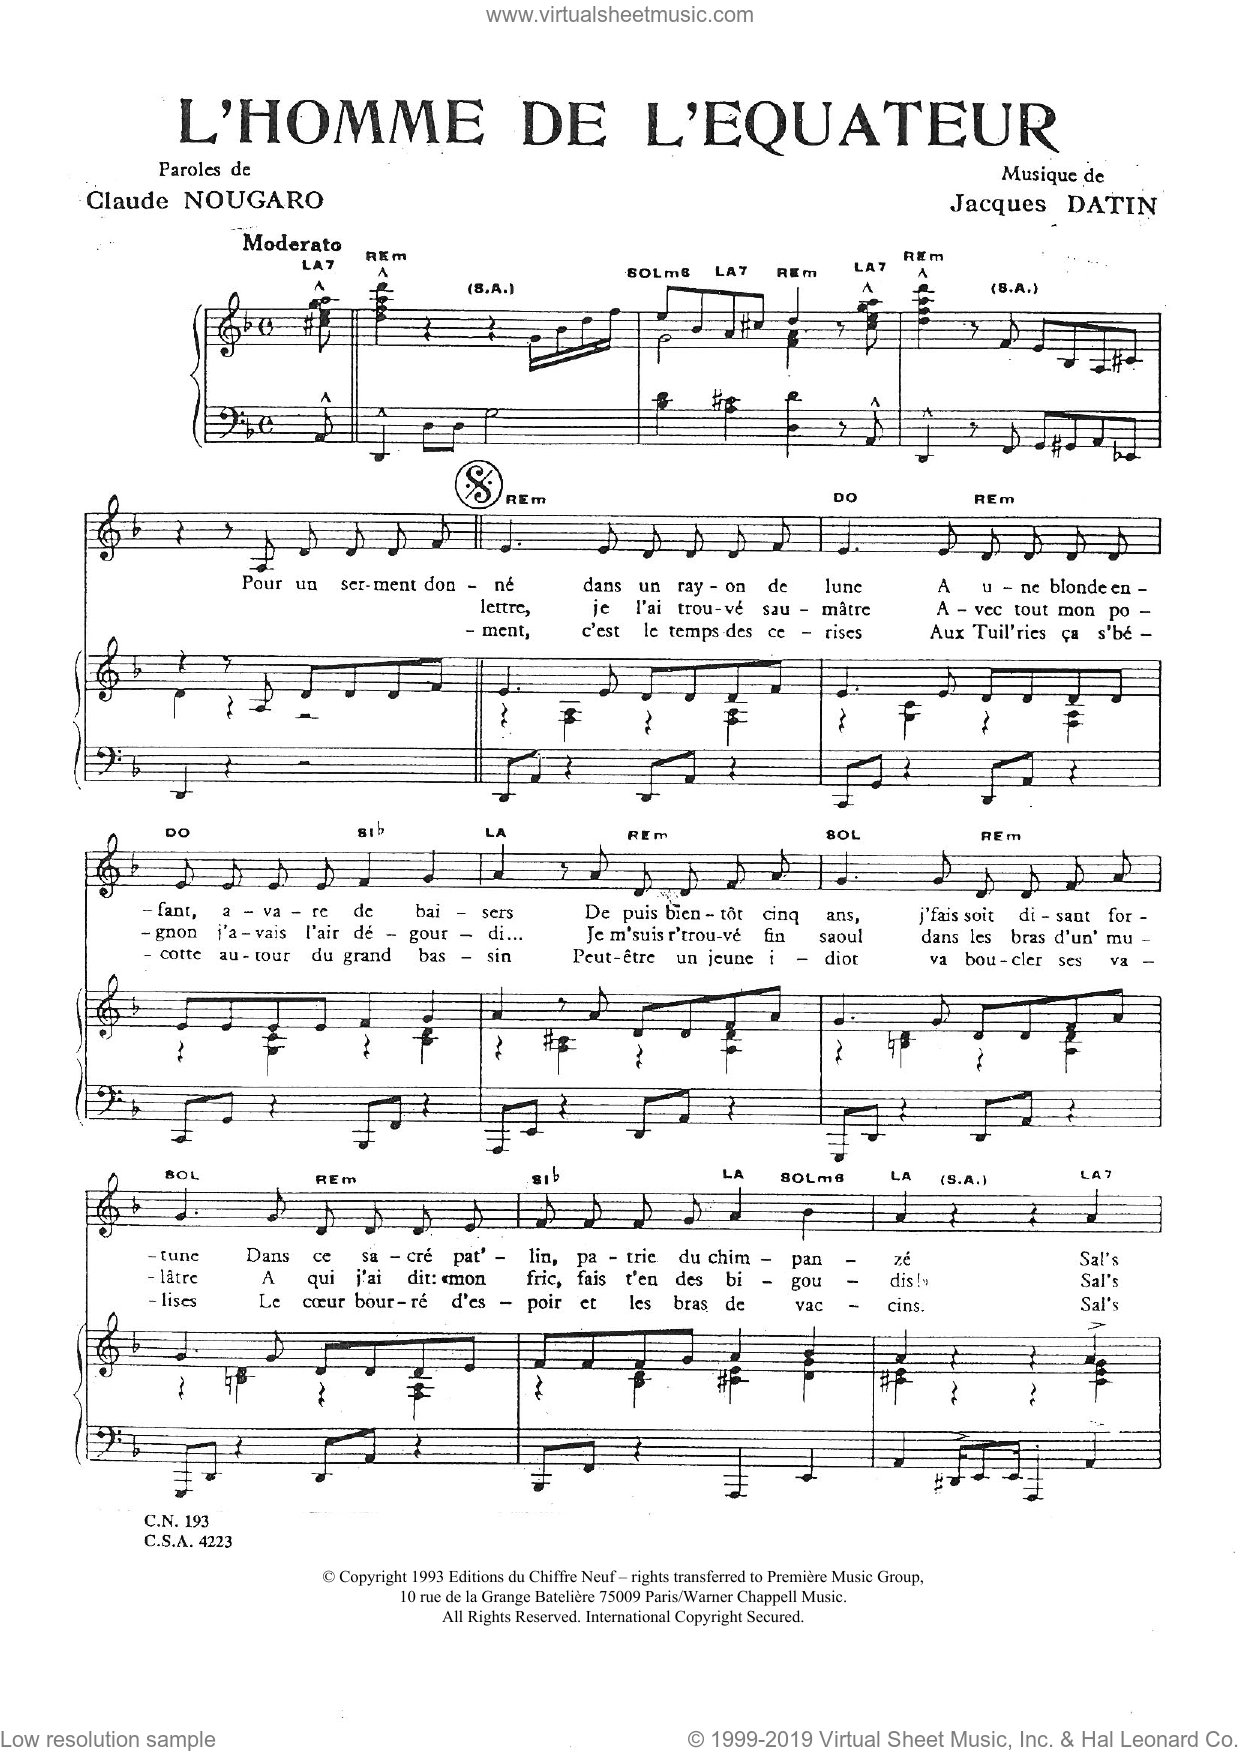 Homme De L'equateur sheet music for voice and piano by Claude Nougaro, intermediate. Score Image Preview.